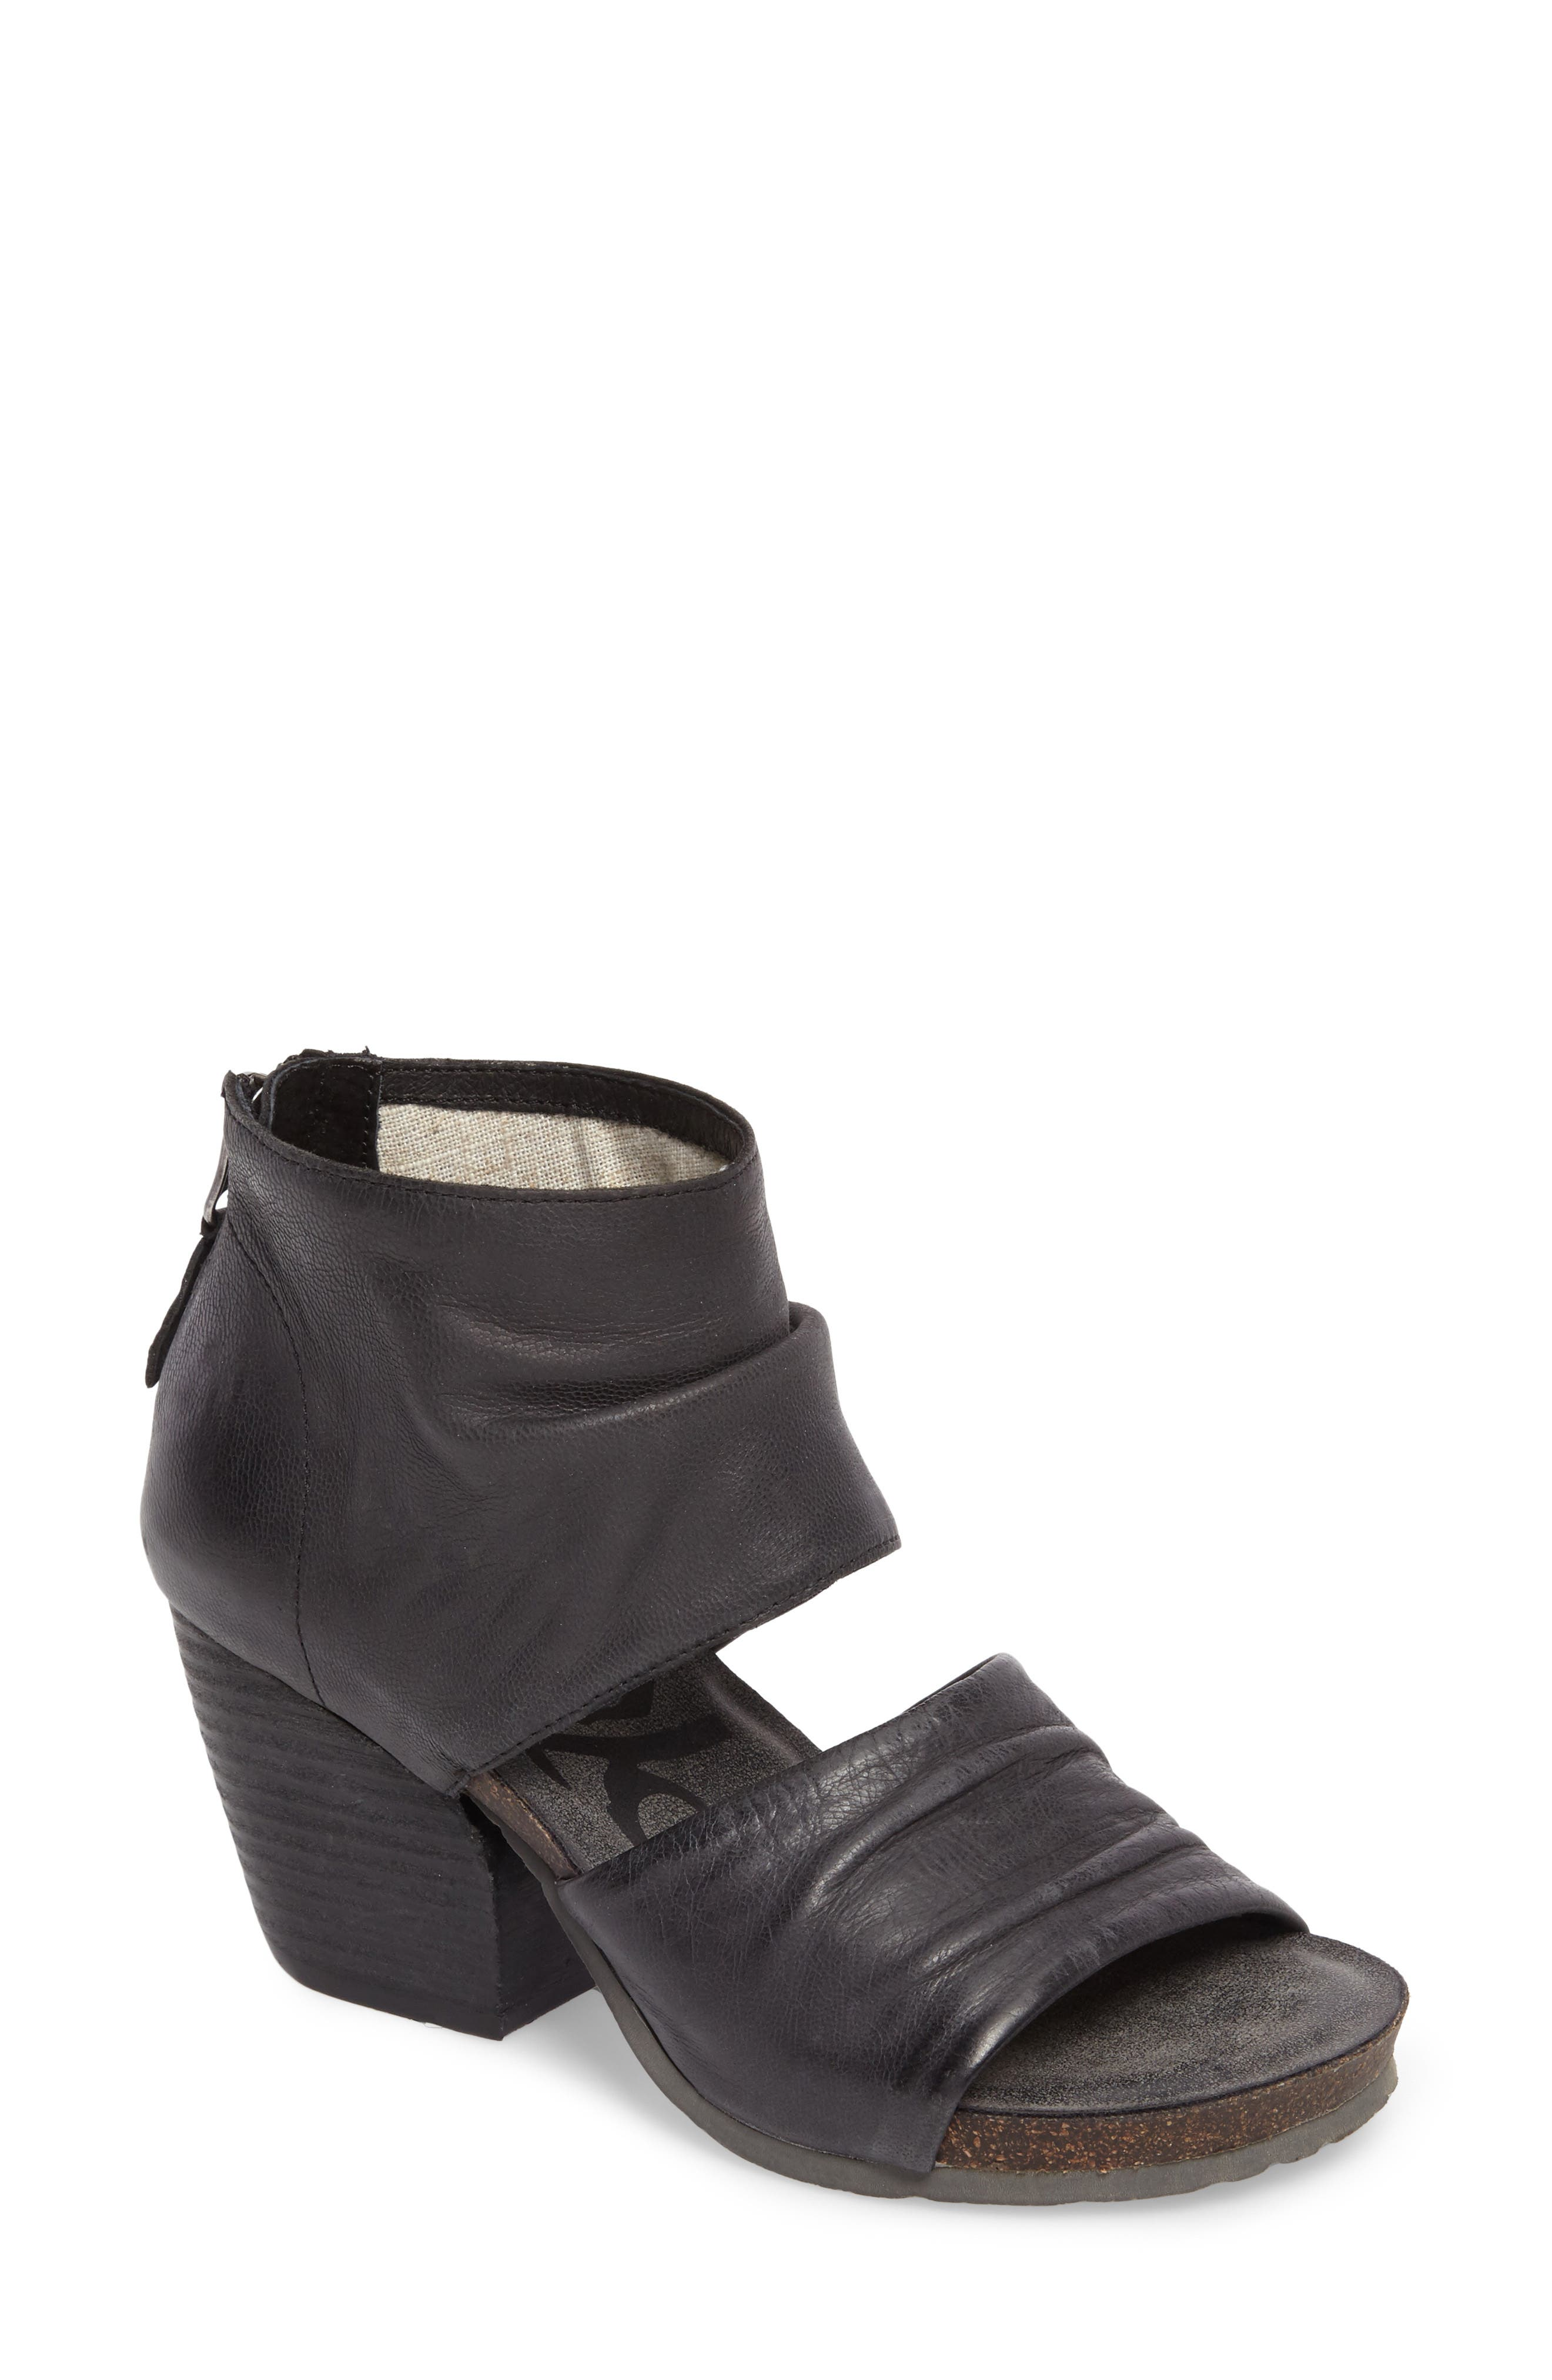 OTBT Patchouli Open Toe Bootie (Women)